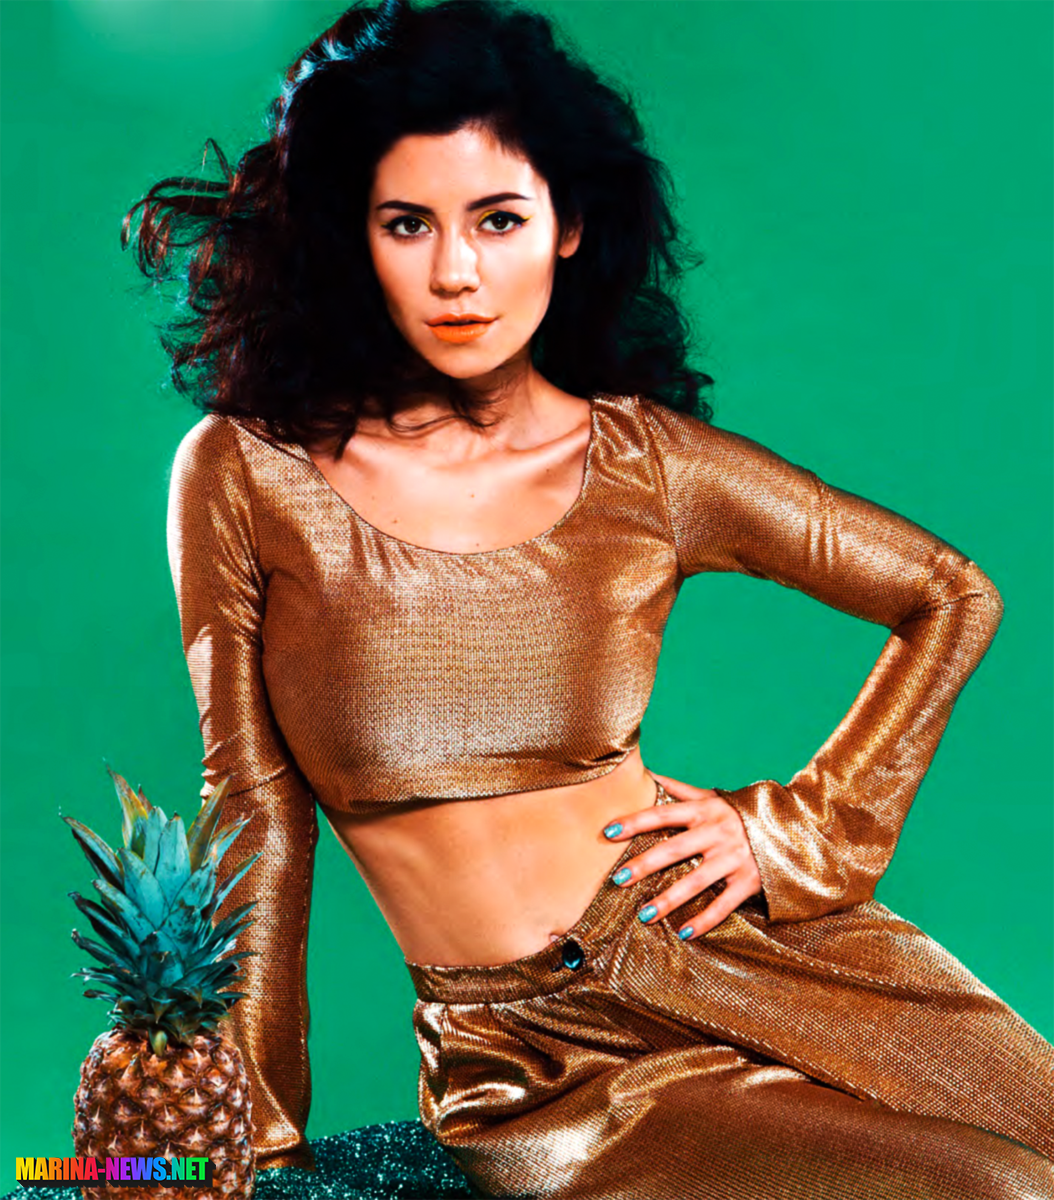 Marina and the Diamonds for Attitude Magazine